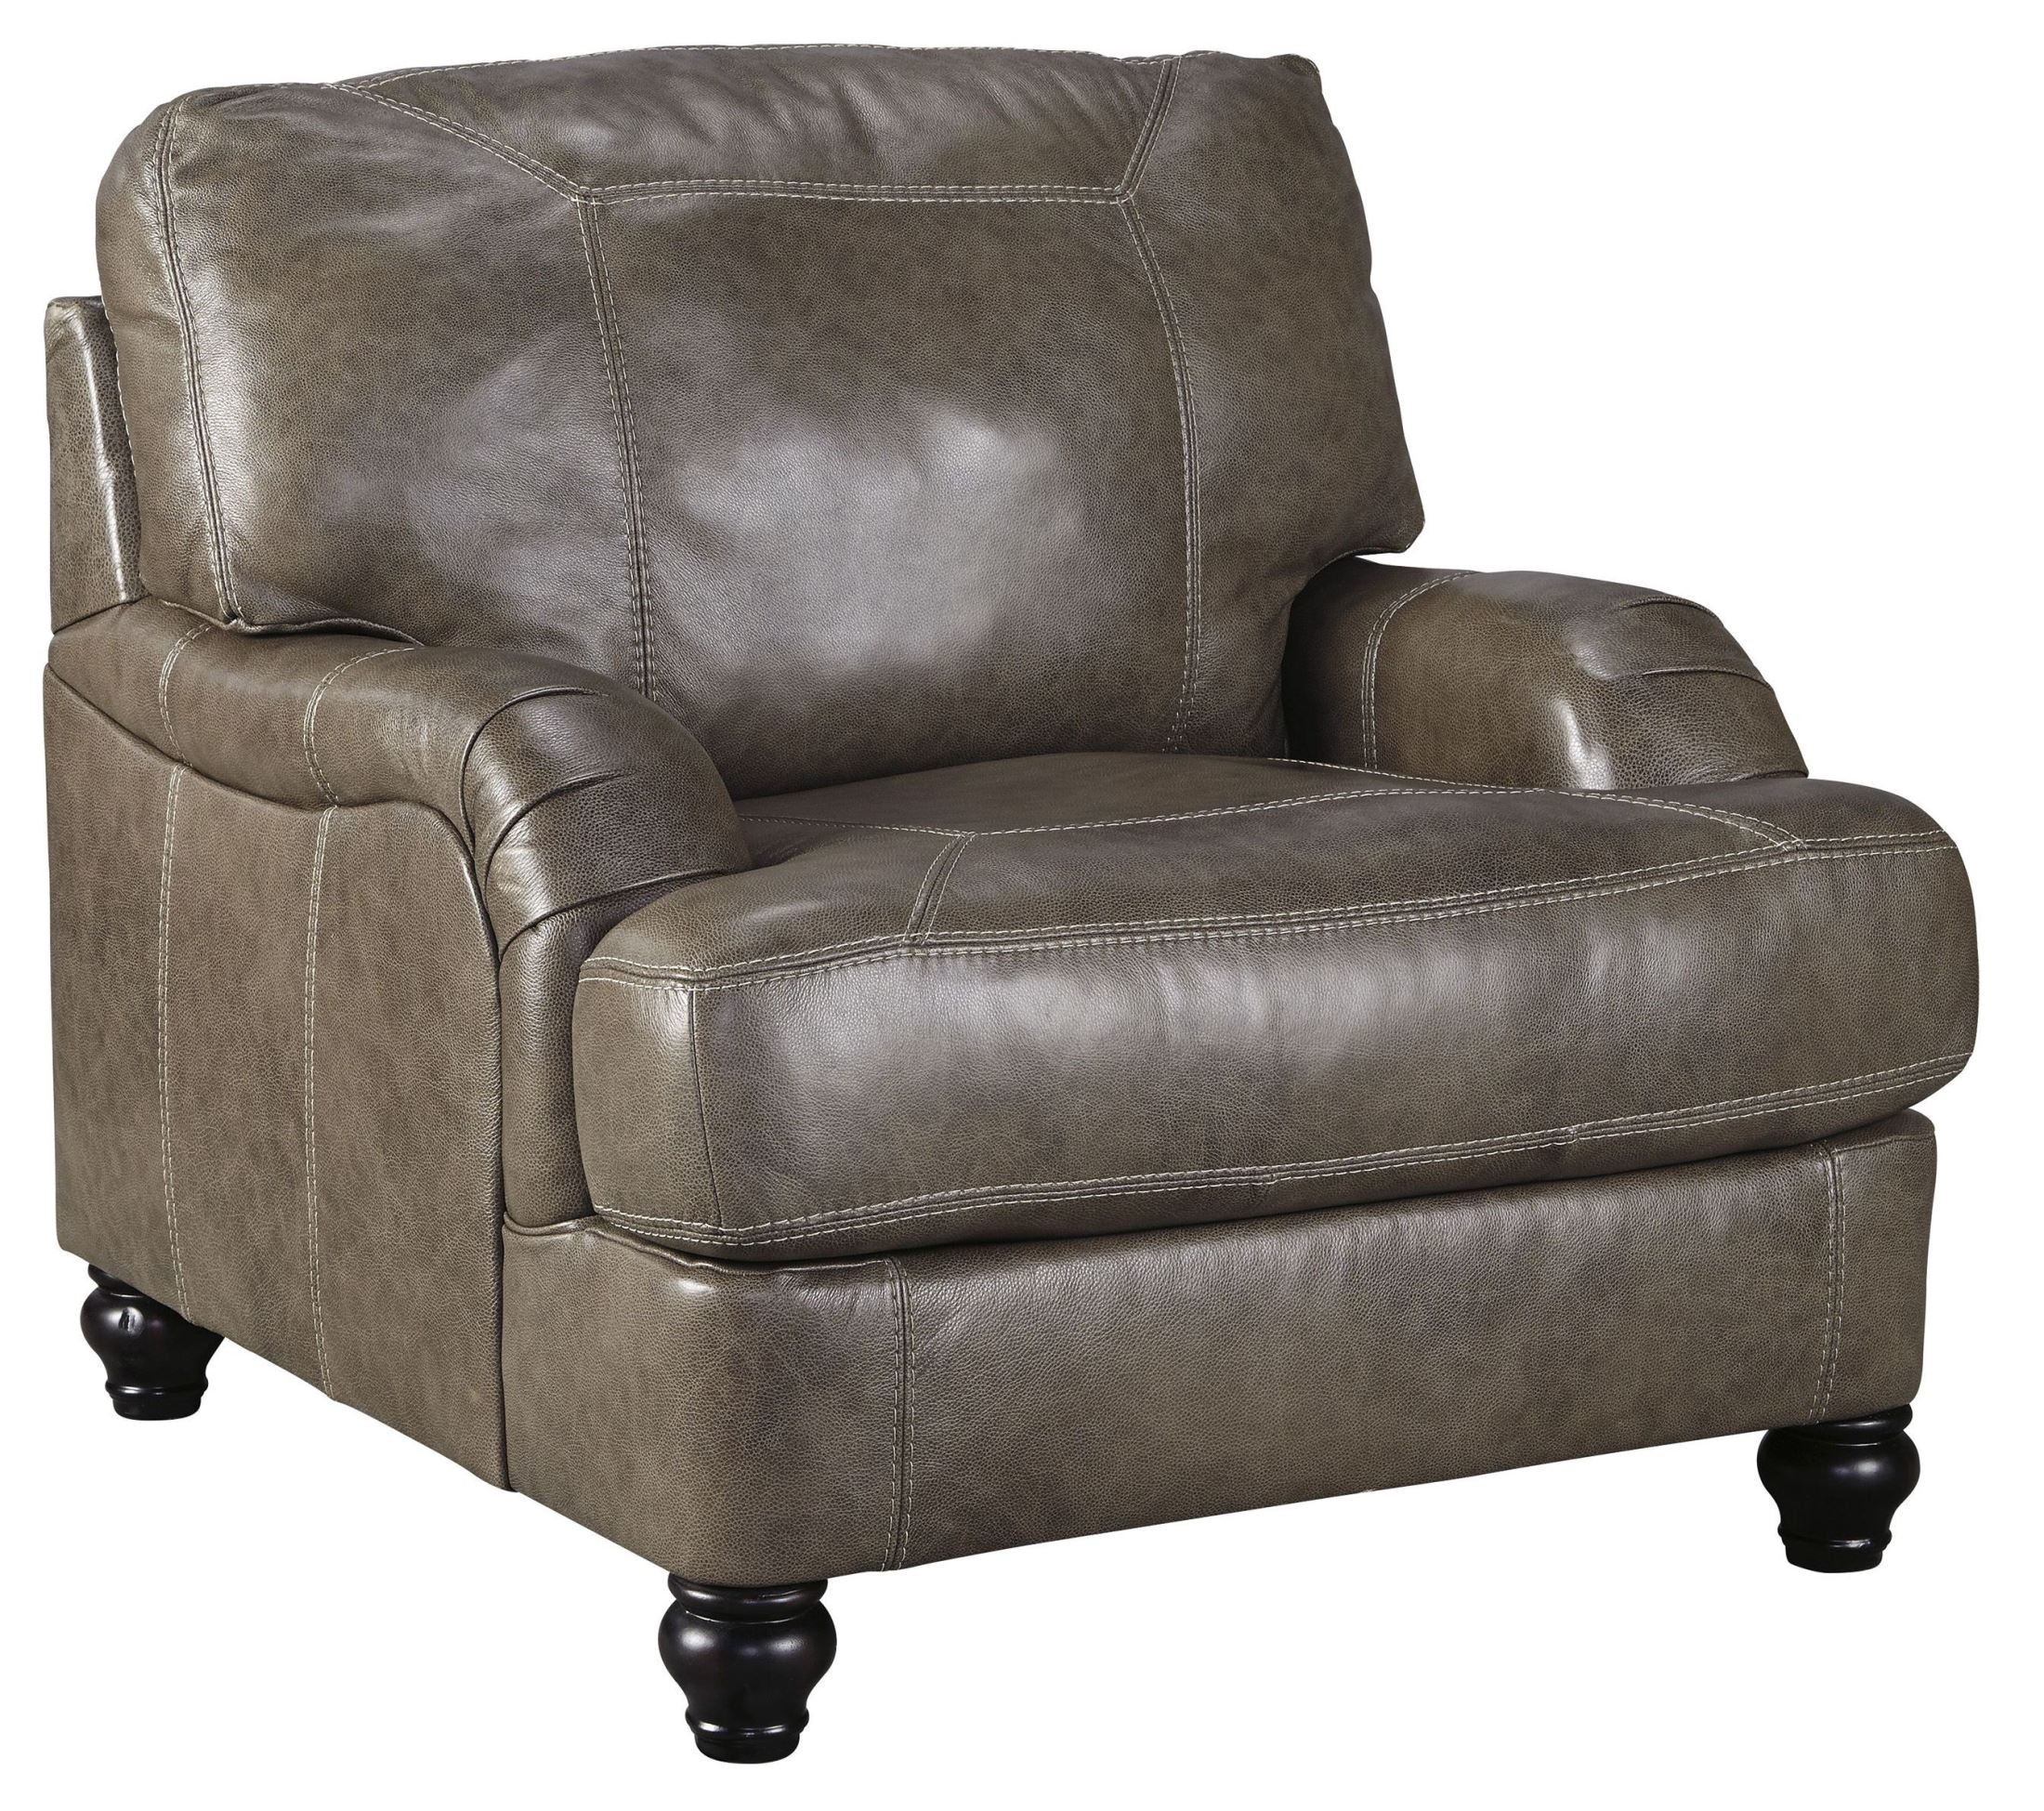 Critter Chair Kannerdy Quarry Living Room Set From Ashley 8040238